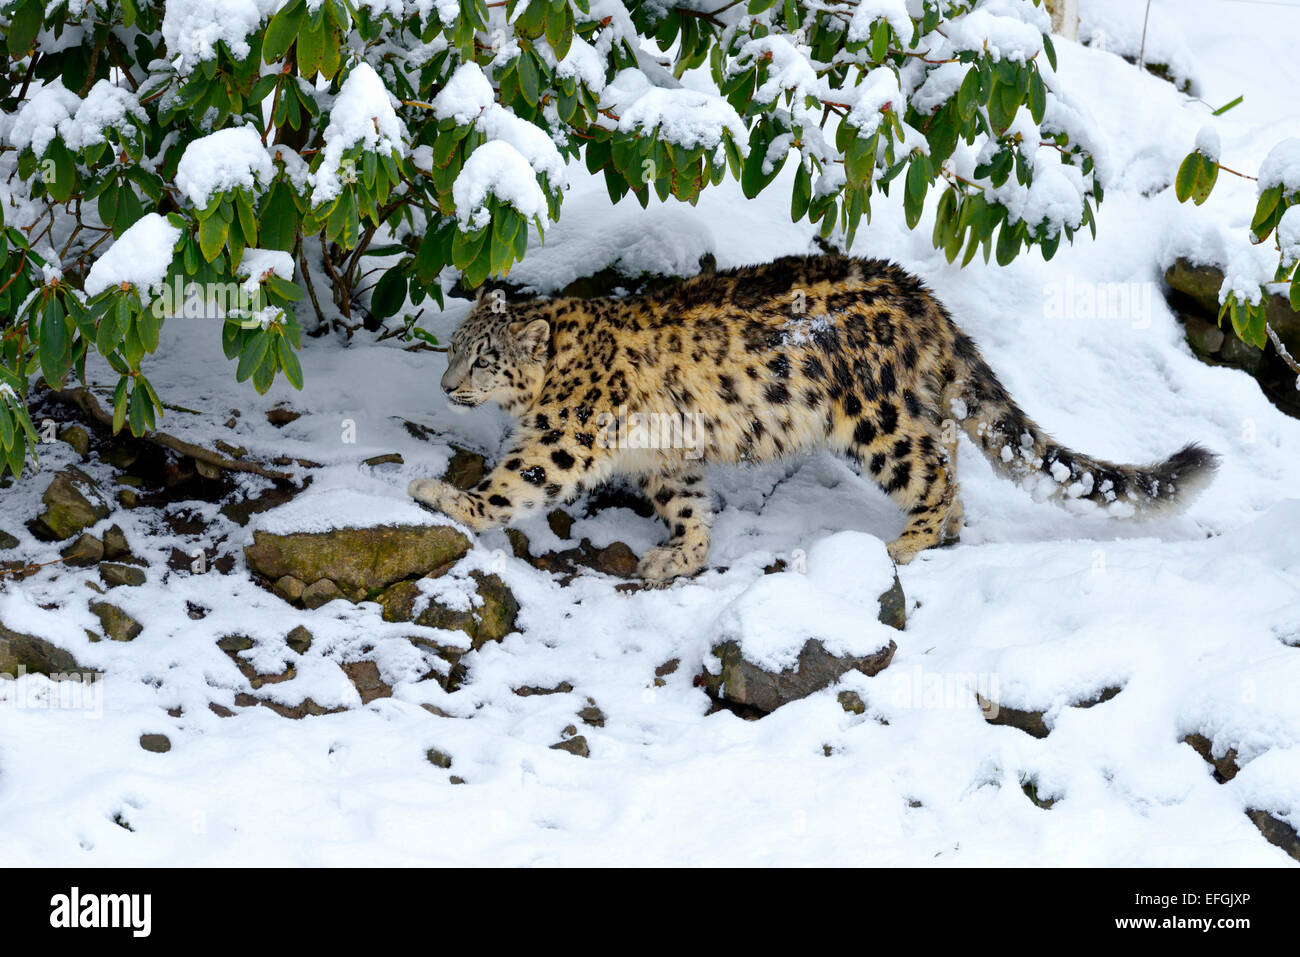 Snow Leopard (Panthera uncia), juvenile, walking on snow-covered rock, captive, Switzerland - Stock Image